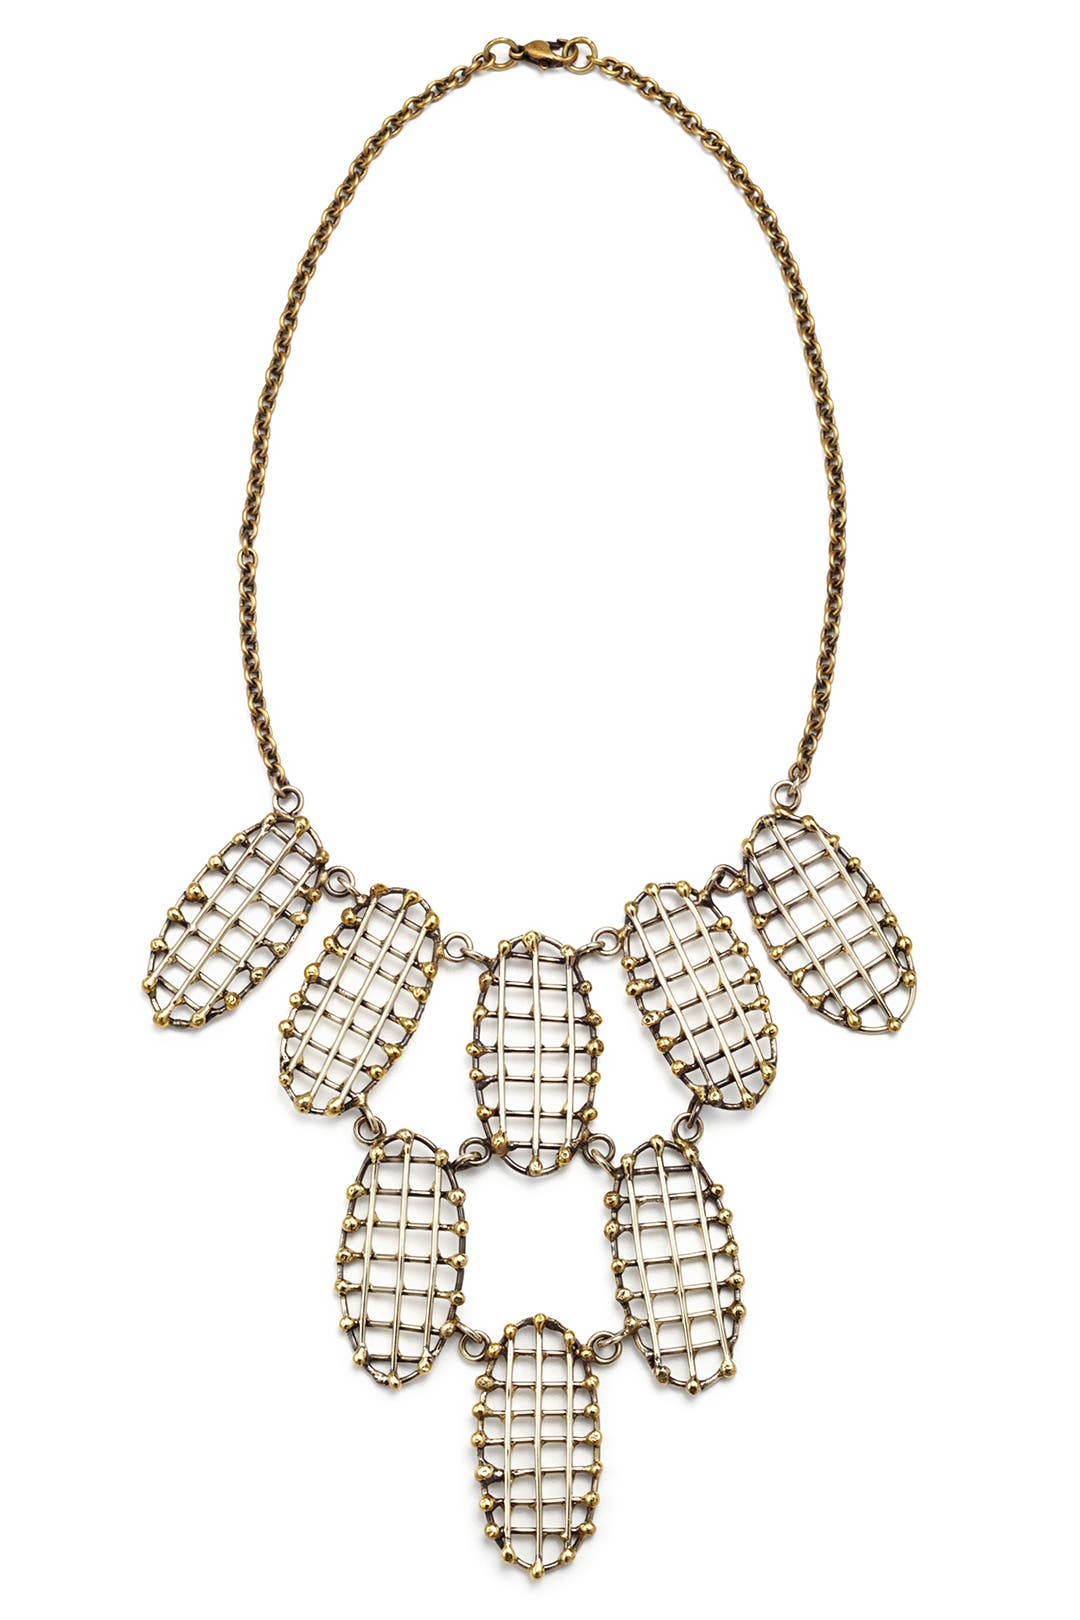 Cuirass Necklace by Anndra Neen